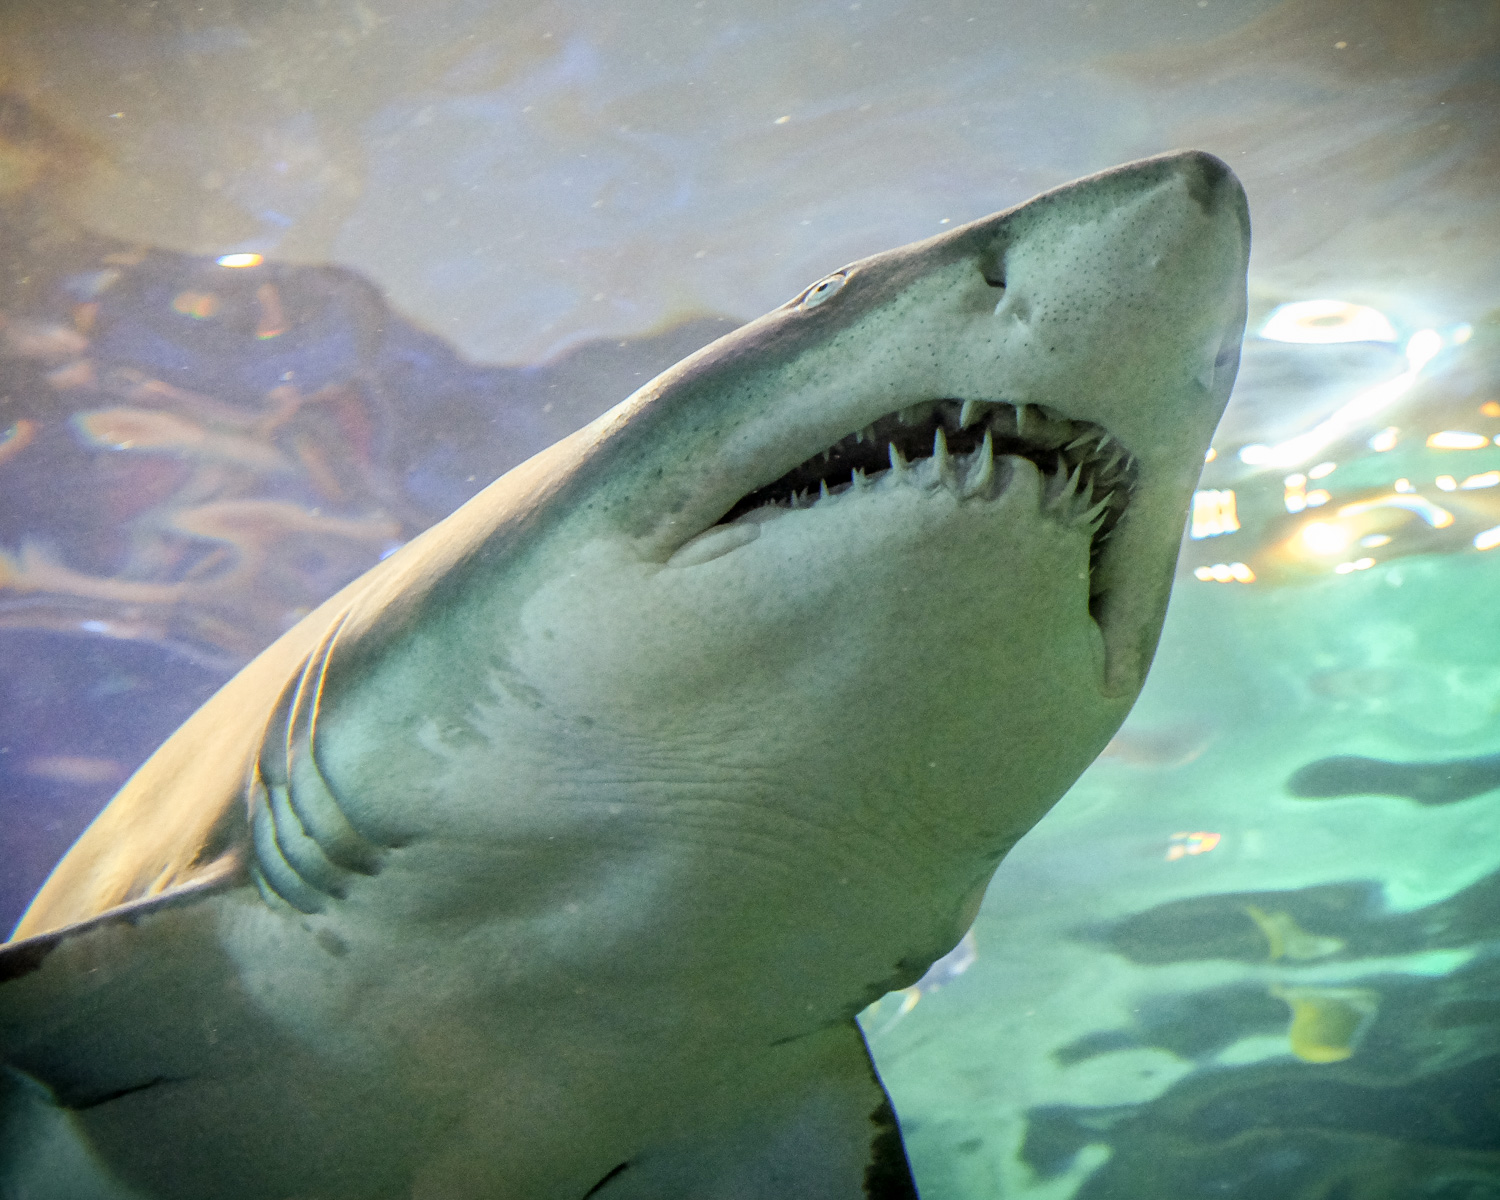 Low angle photo of a shark with its teeth showing. How to Take Clear and Creative Photos at Aquariums